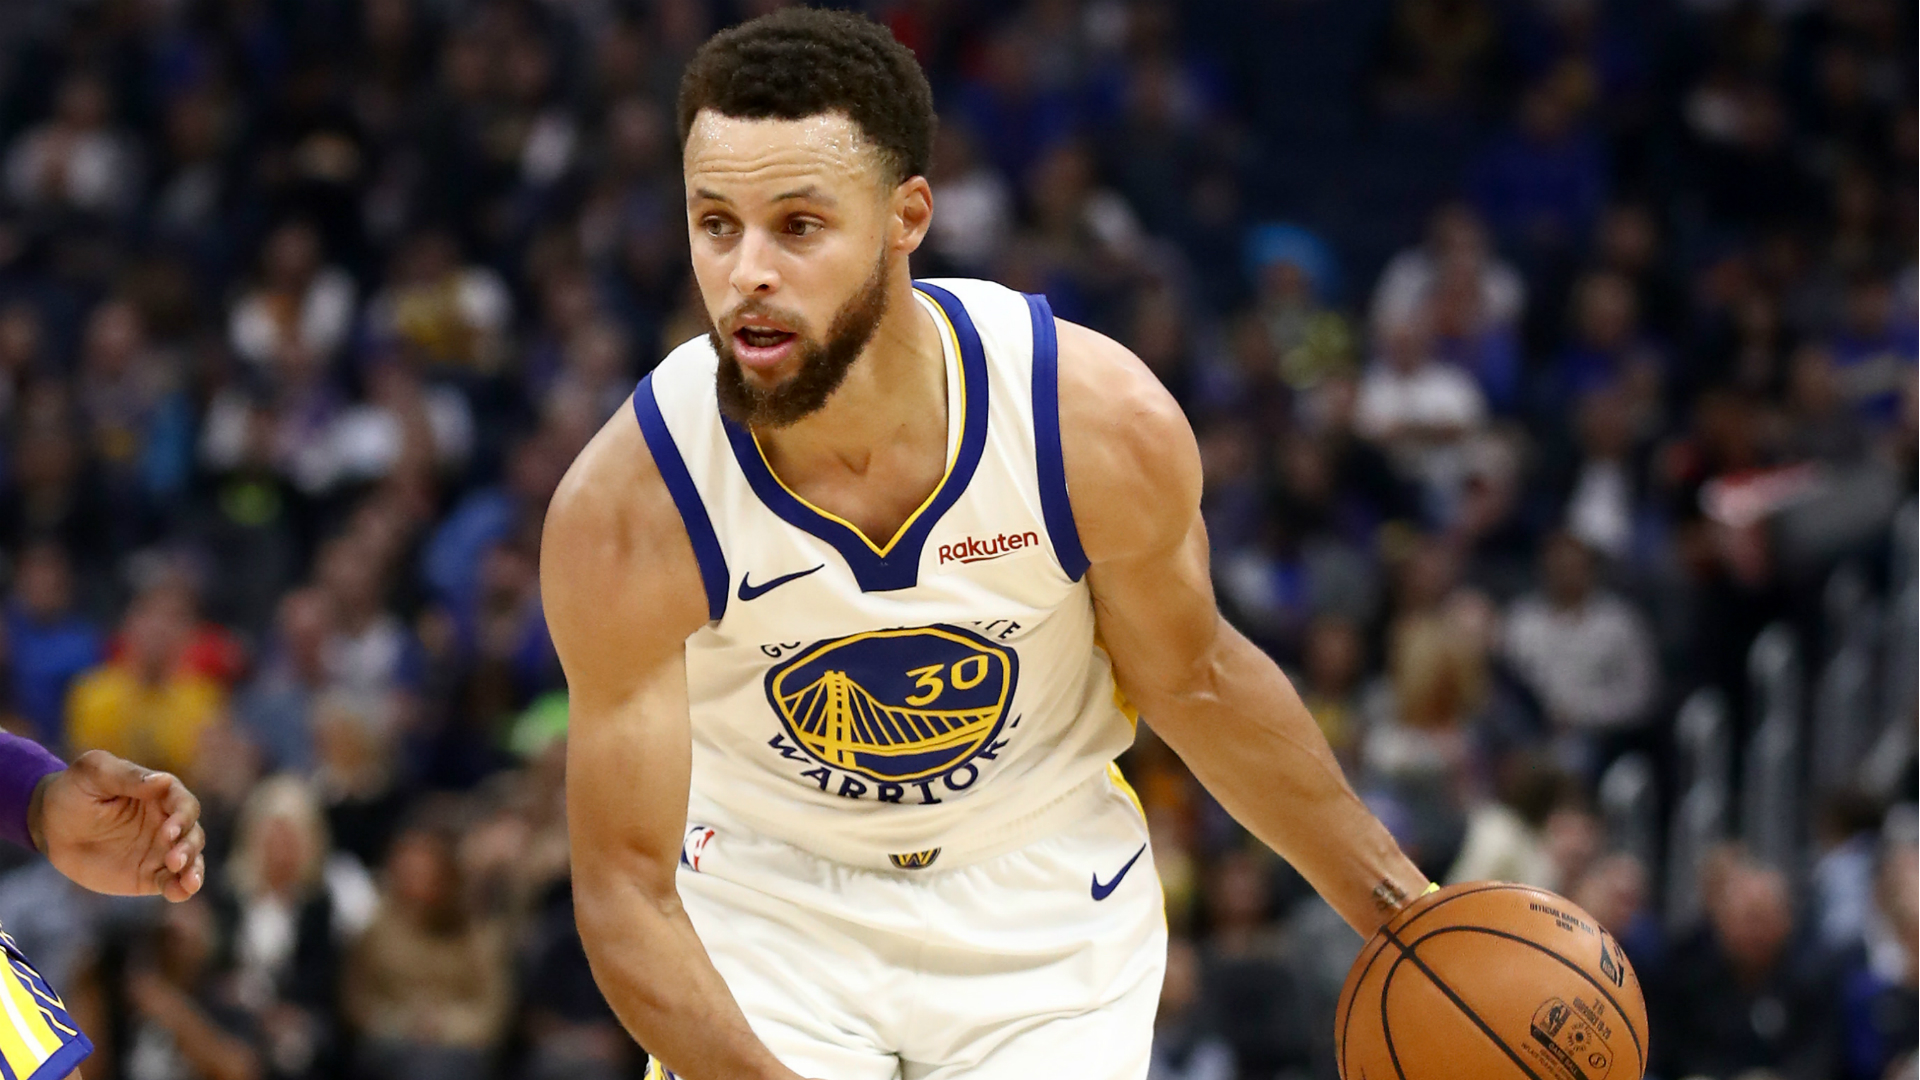 Steve Kerr says Warriors never considered shutting down Stephen Curry for remainder of season